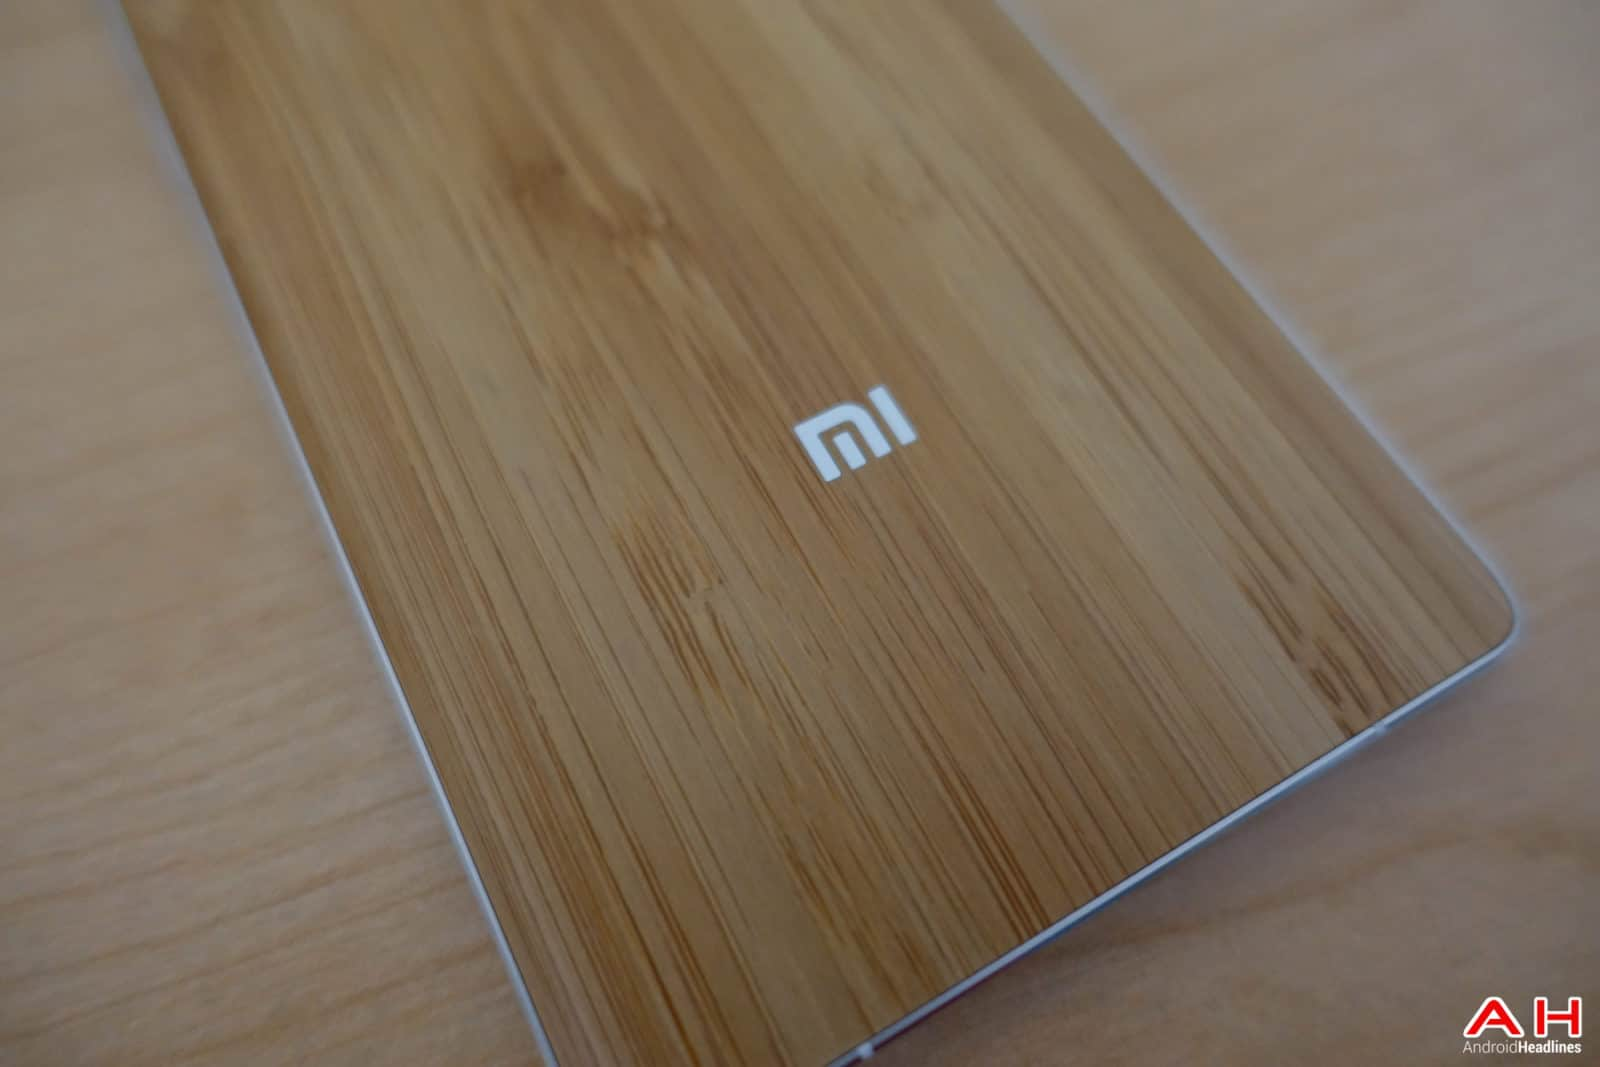 AH Xiaomi Note Bamboo Logo June 30 Series 2-3